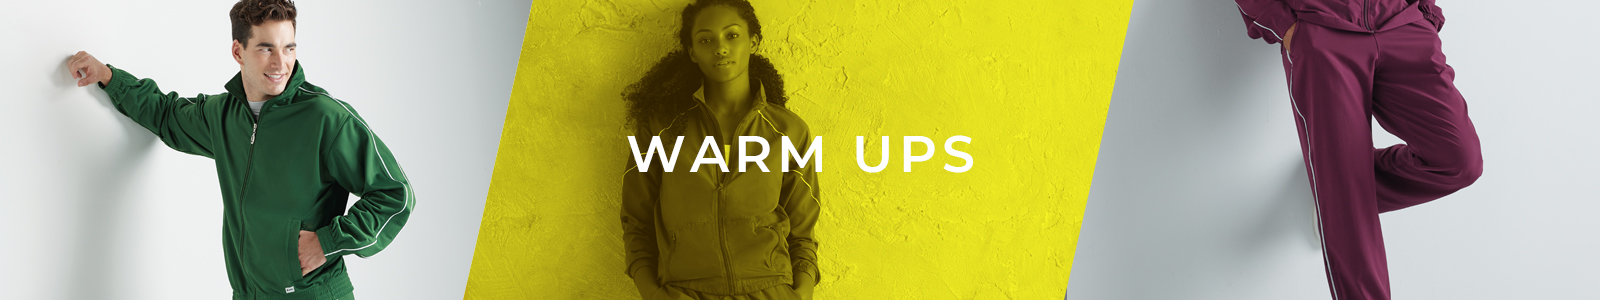 soffe apparel warm ups category banner